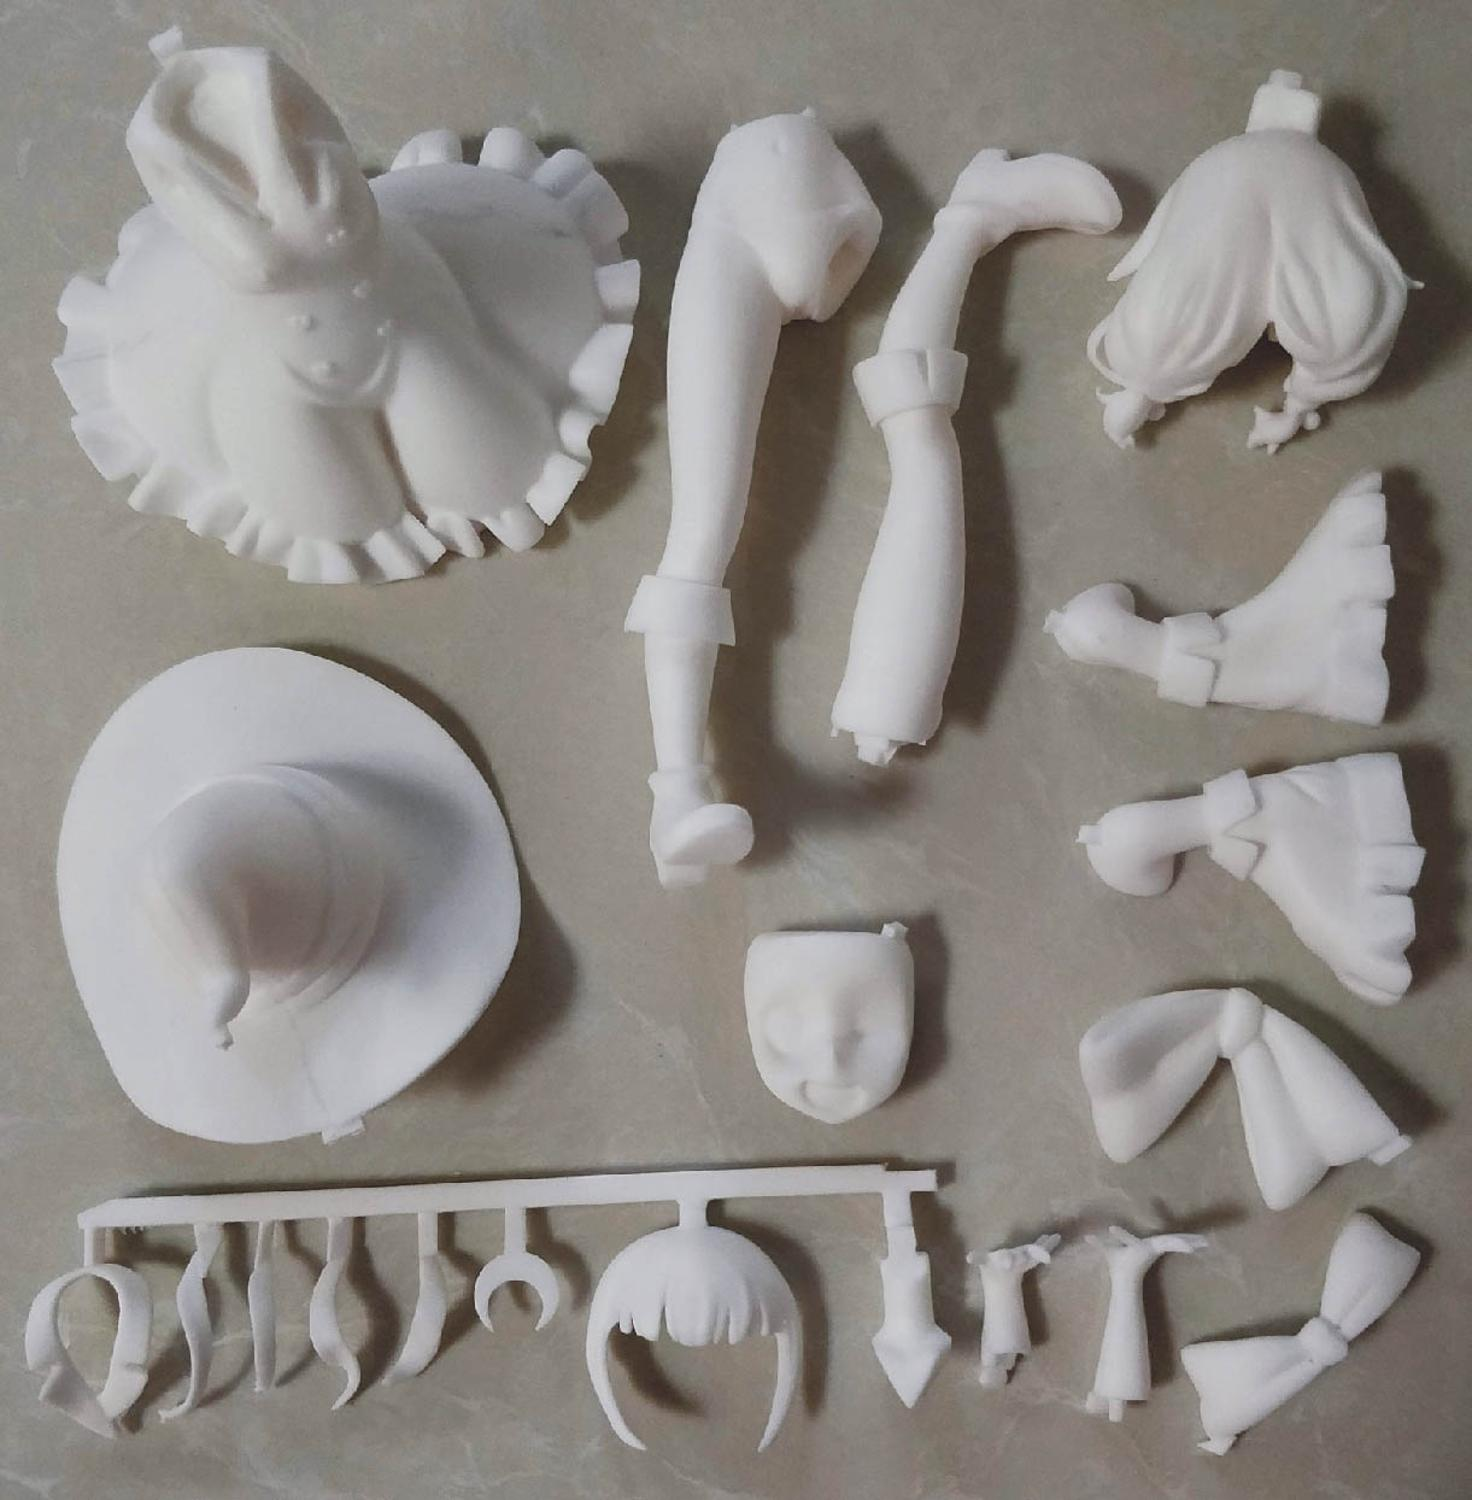 Resin Figure Kit NEWGAME! Garage Kit Unpainted Garage Resin Model Kit